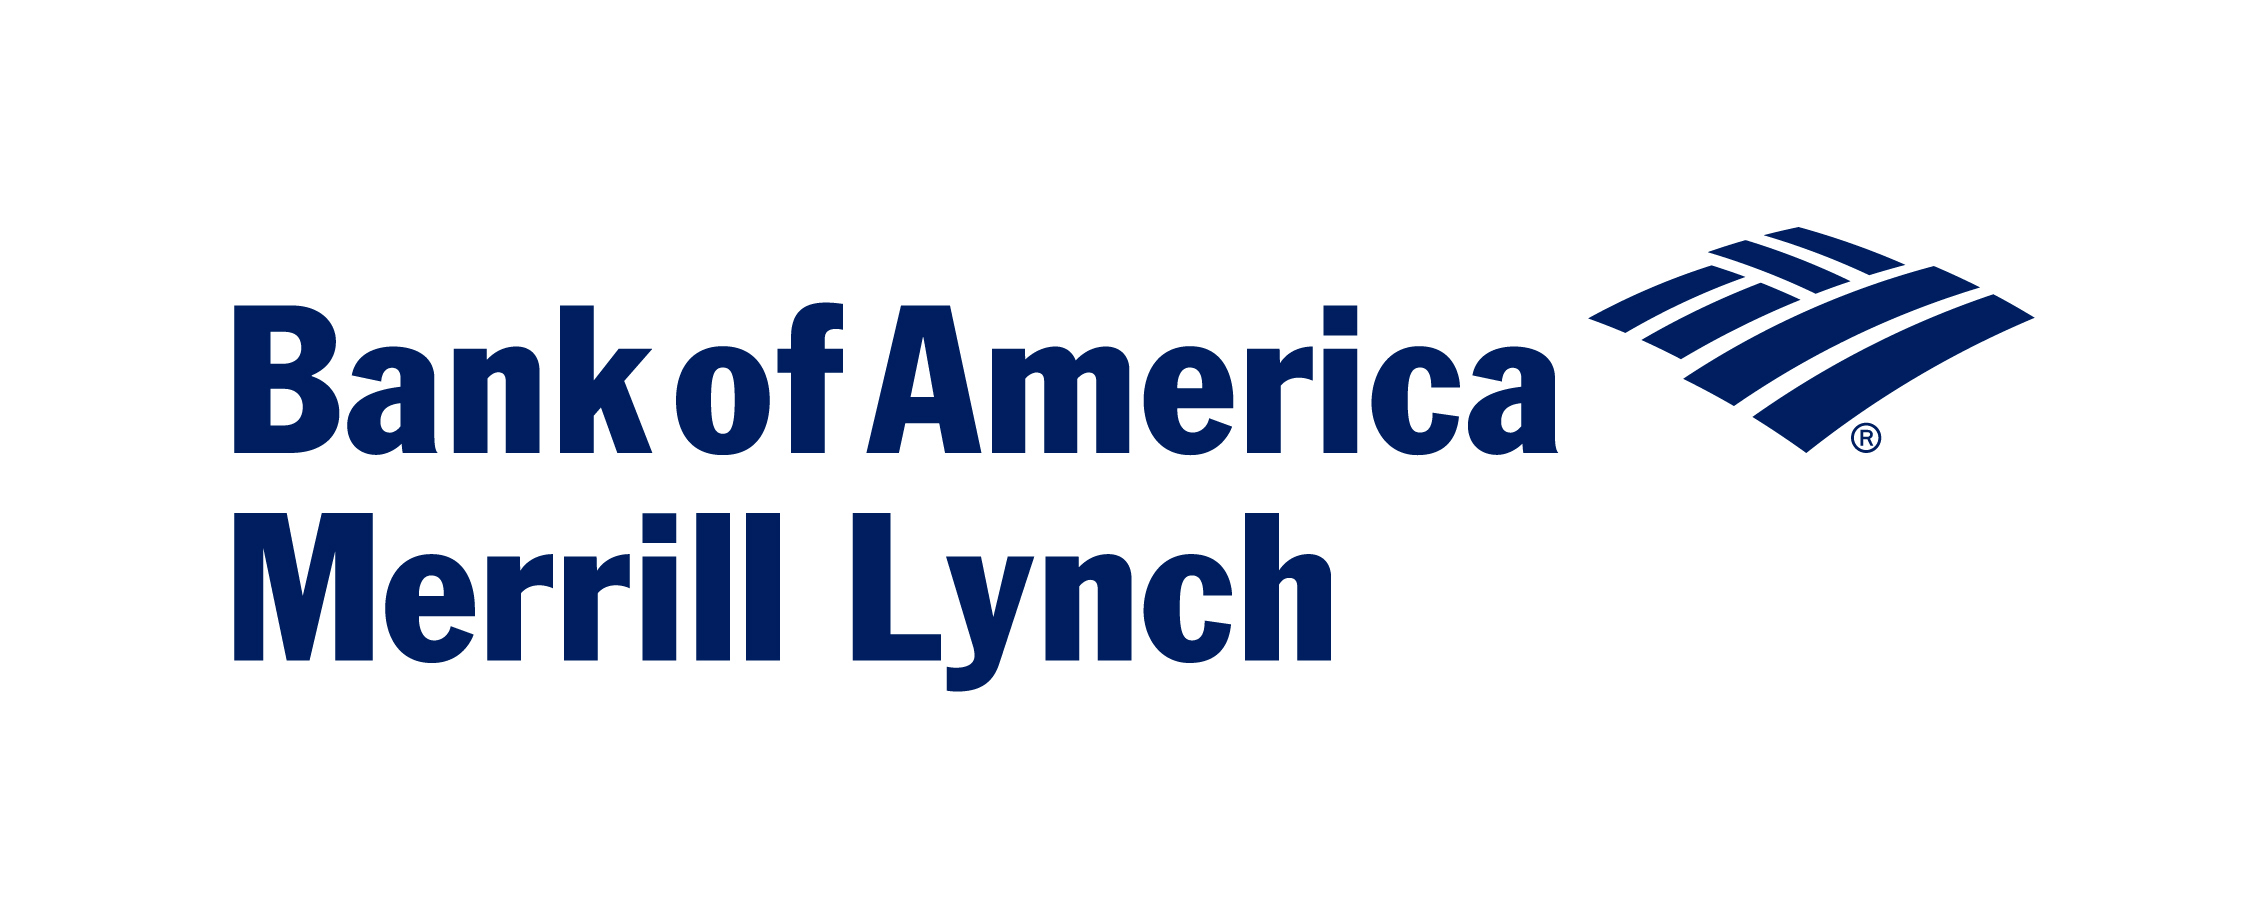 bank_of_america_merrill_lynch_rgb_300.jpg